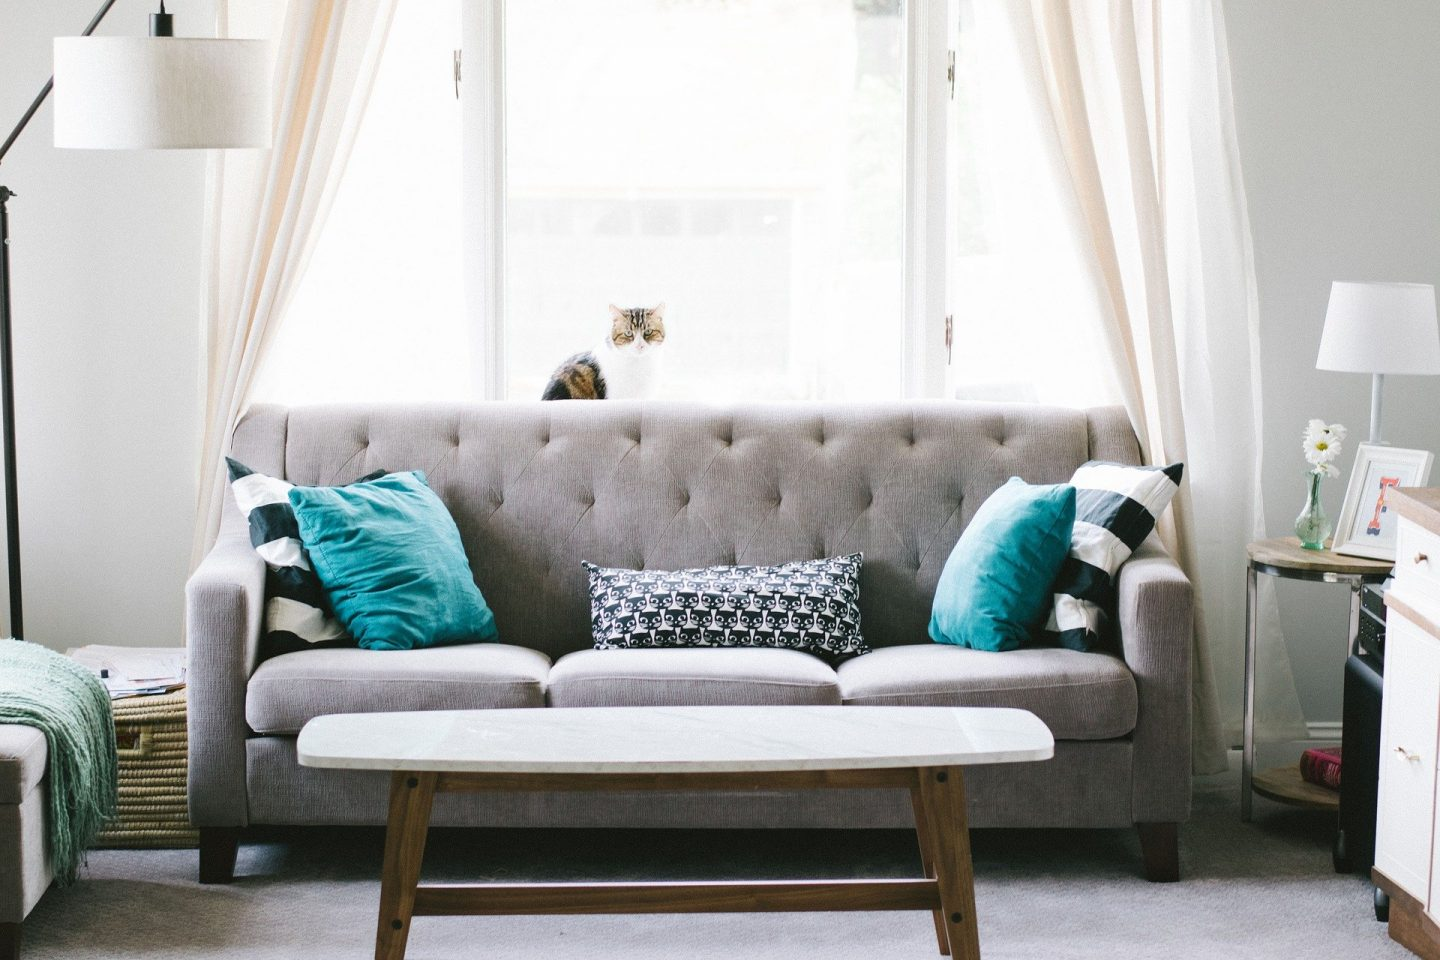 , How to Smarten up Your Interior Without Spending a Fortune